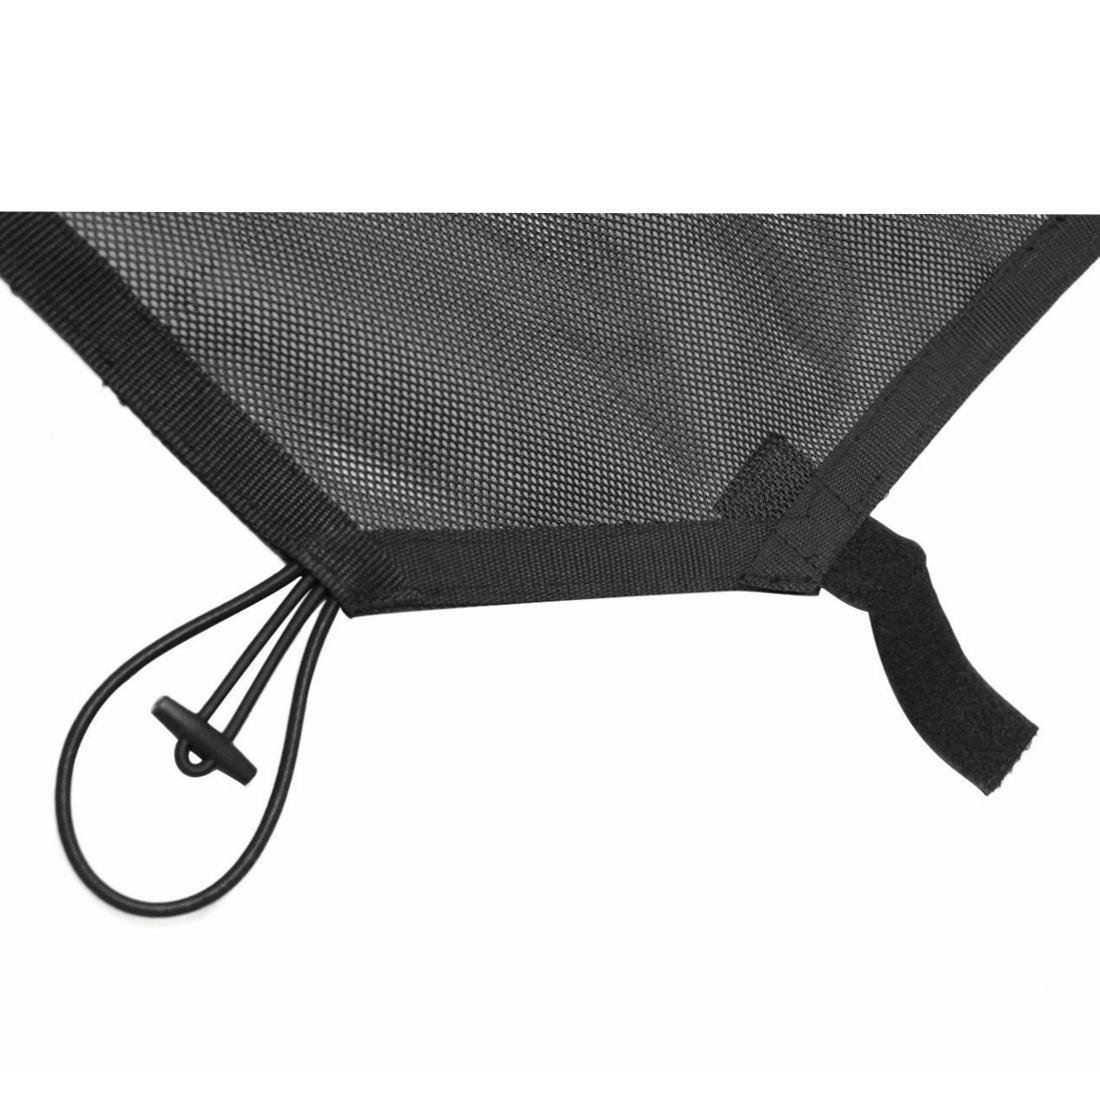 AVOMAR Black Eclipse Sunshade Mesh Sun Shade Full Top Cover UV Protection with Storage Pockets for 2007-2017 Jeep Wrangler JK /& Unlimited 4 Door Black with Logo